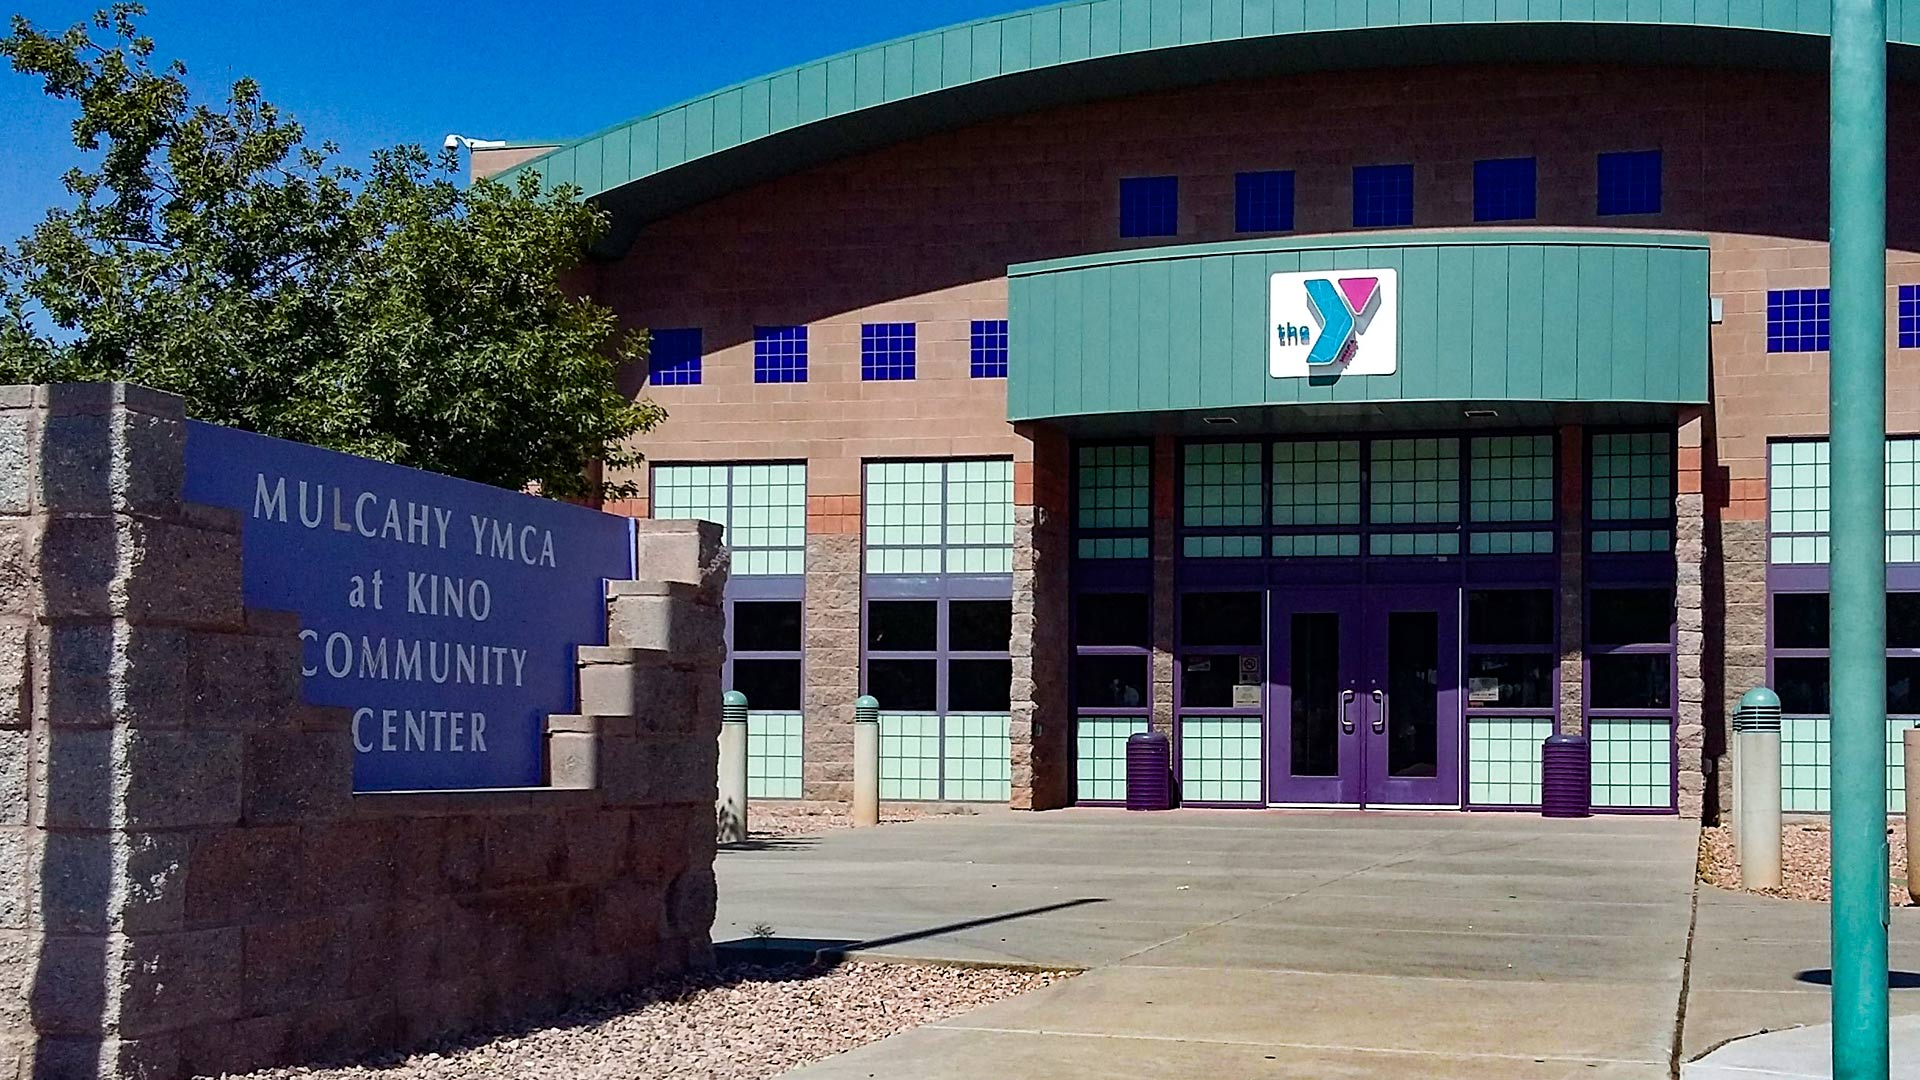 The Mulcahy YMCA at the Kino Community Center.